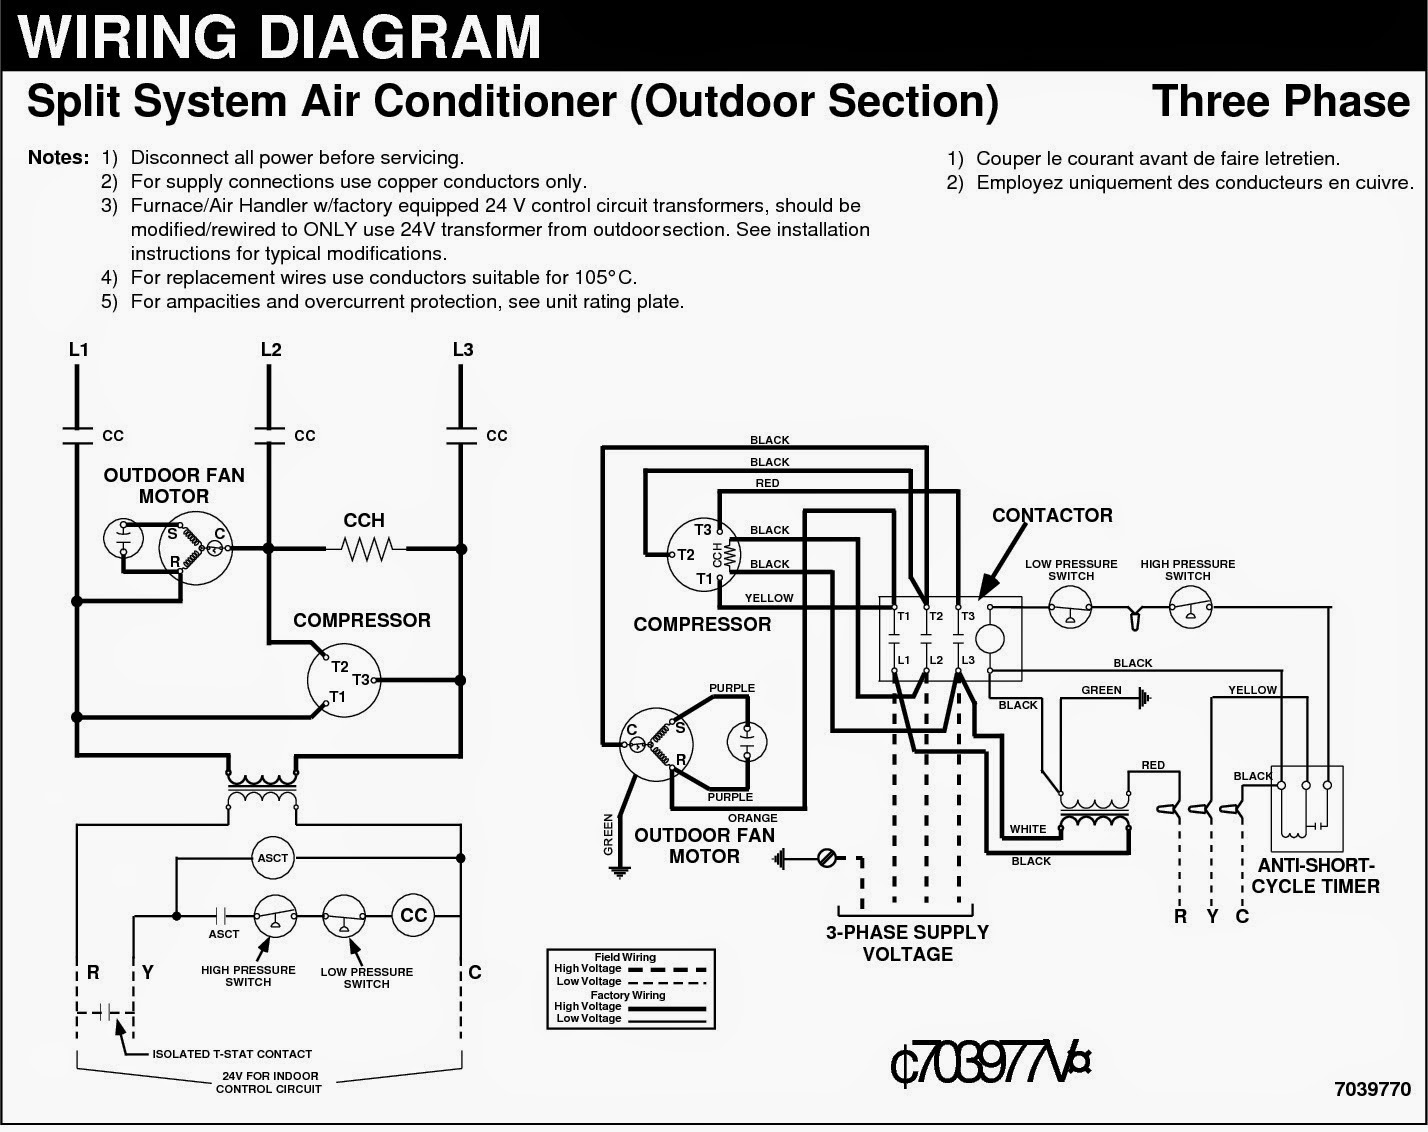 Single Pole Switch Wiring Diagram Stream Three Free Images Power And Signal Connections Electrical Circuit